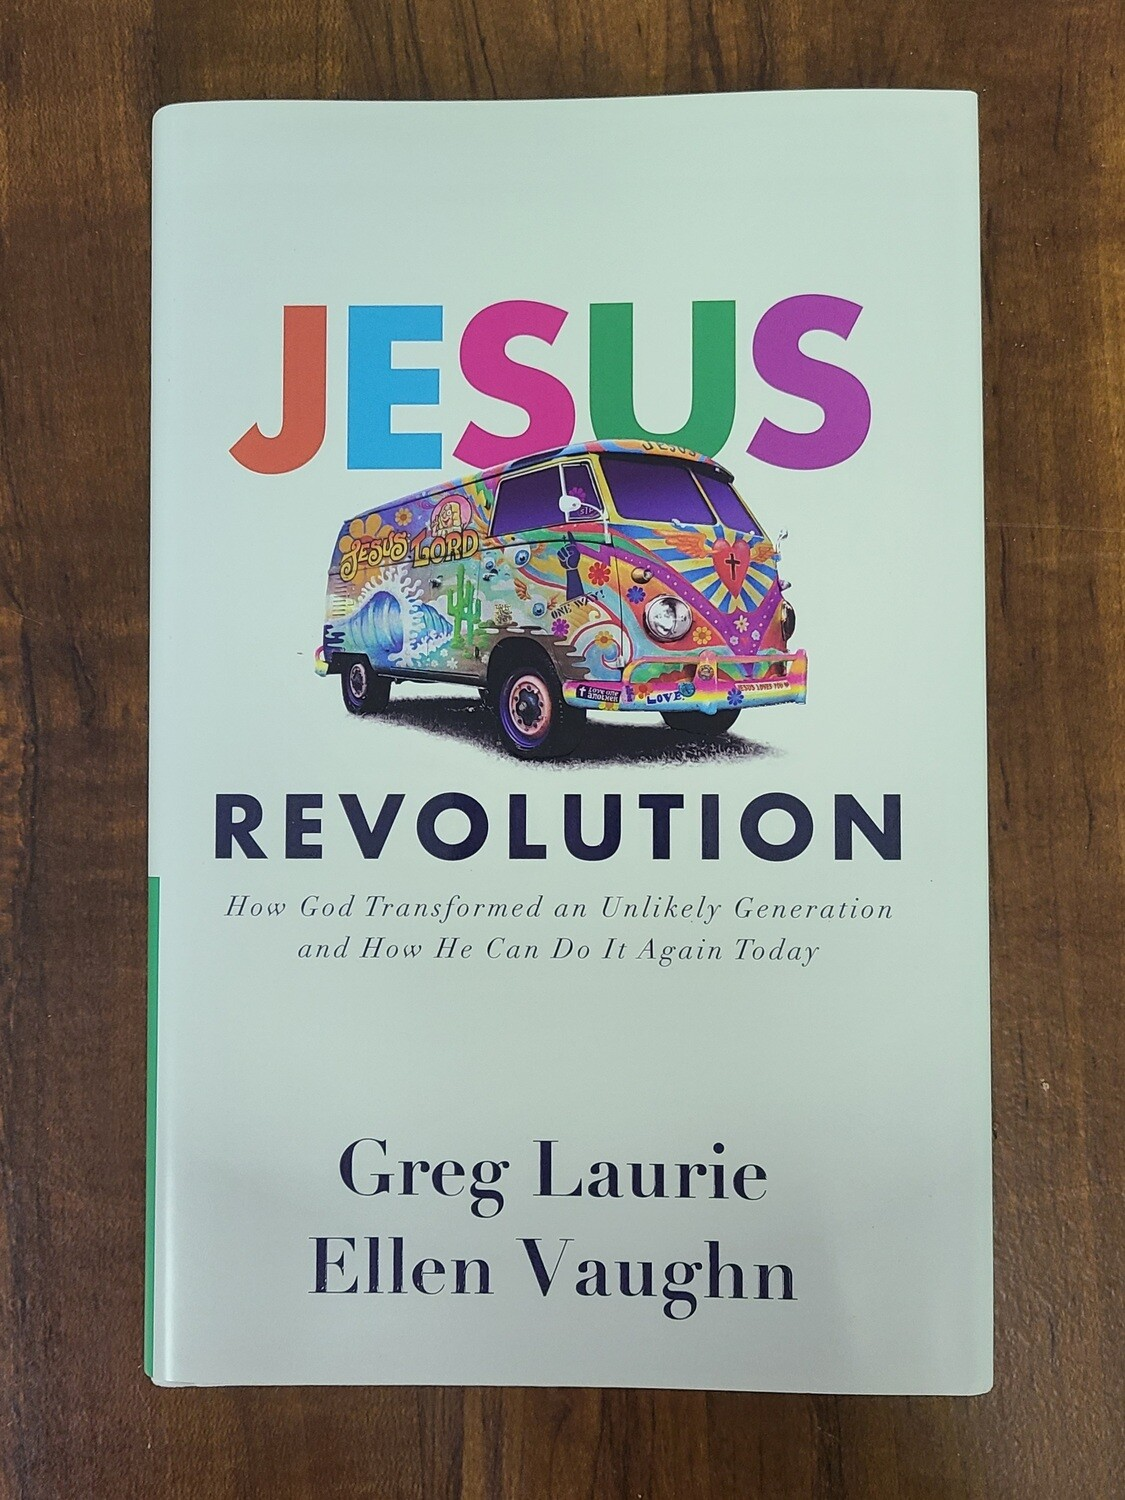 Jesus Revolution: How God Transformed an Unlikely Generation and How He Can Do It Again Today by Greg Laurie and Ellen Vaughn